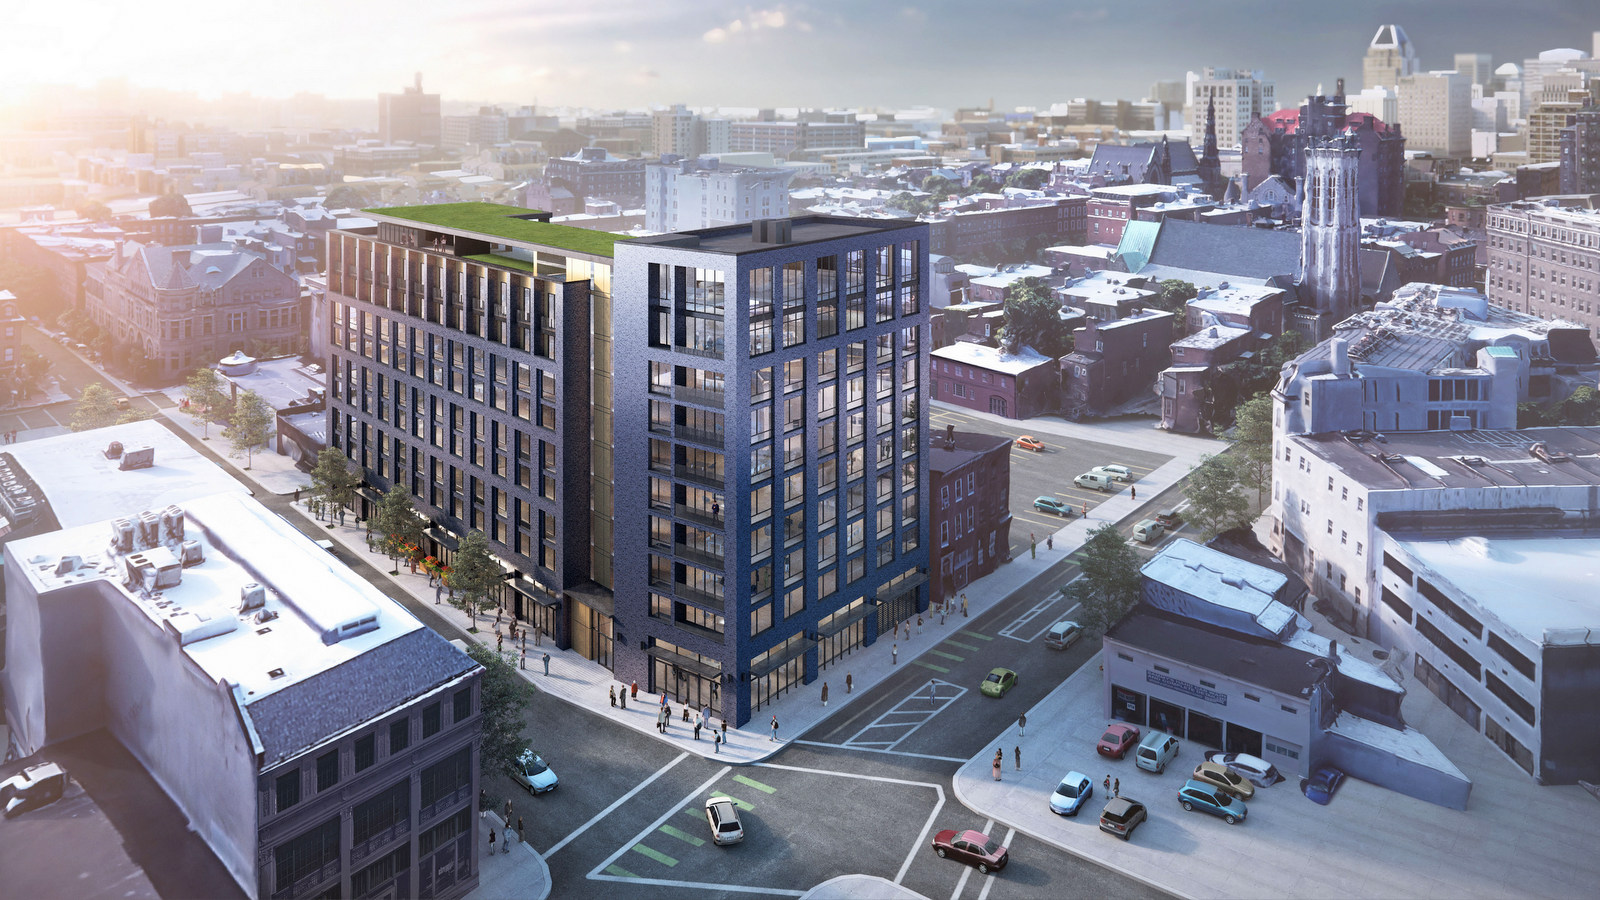 10-story building proposed on the site where Eddie's of Mt. Vernon. (Ziger/Snead)